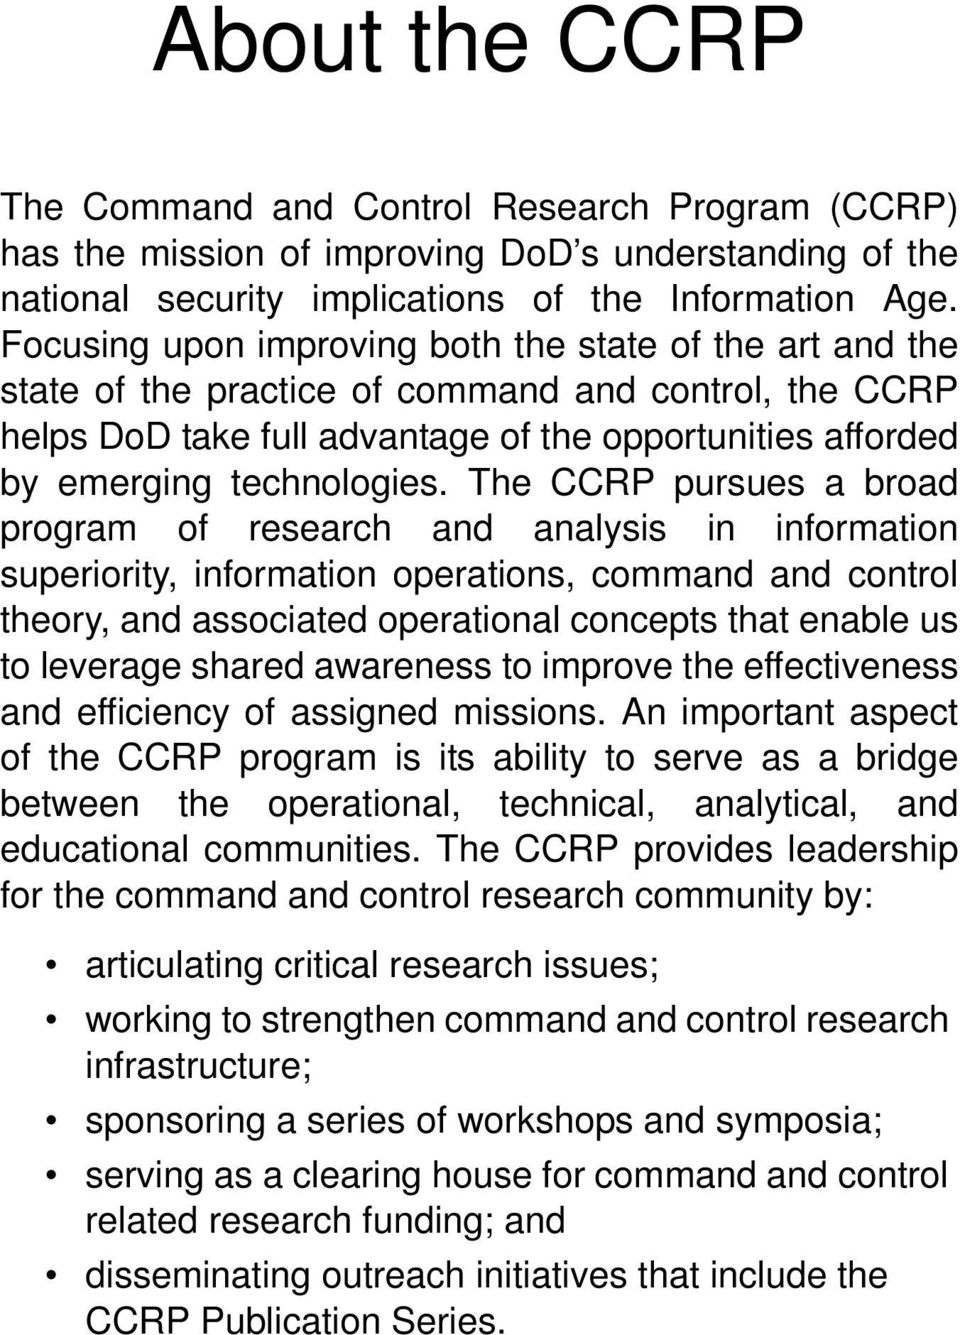 The CCRP pursues a broad program of research and analysis in information superiority, information operations, command and control theory, and associated operational concepts that enable us to